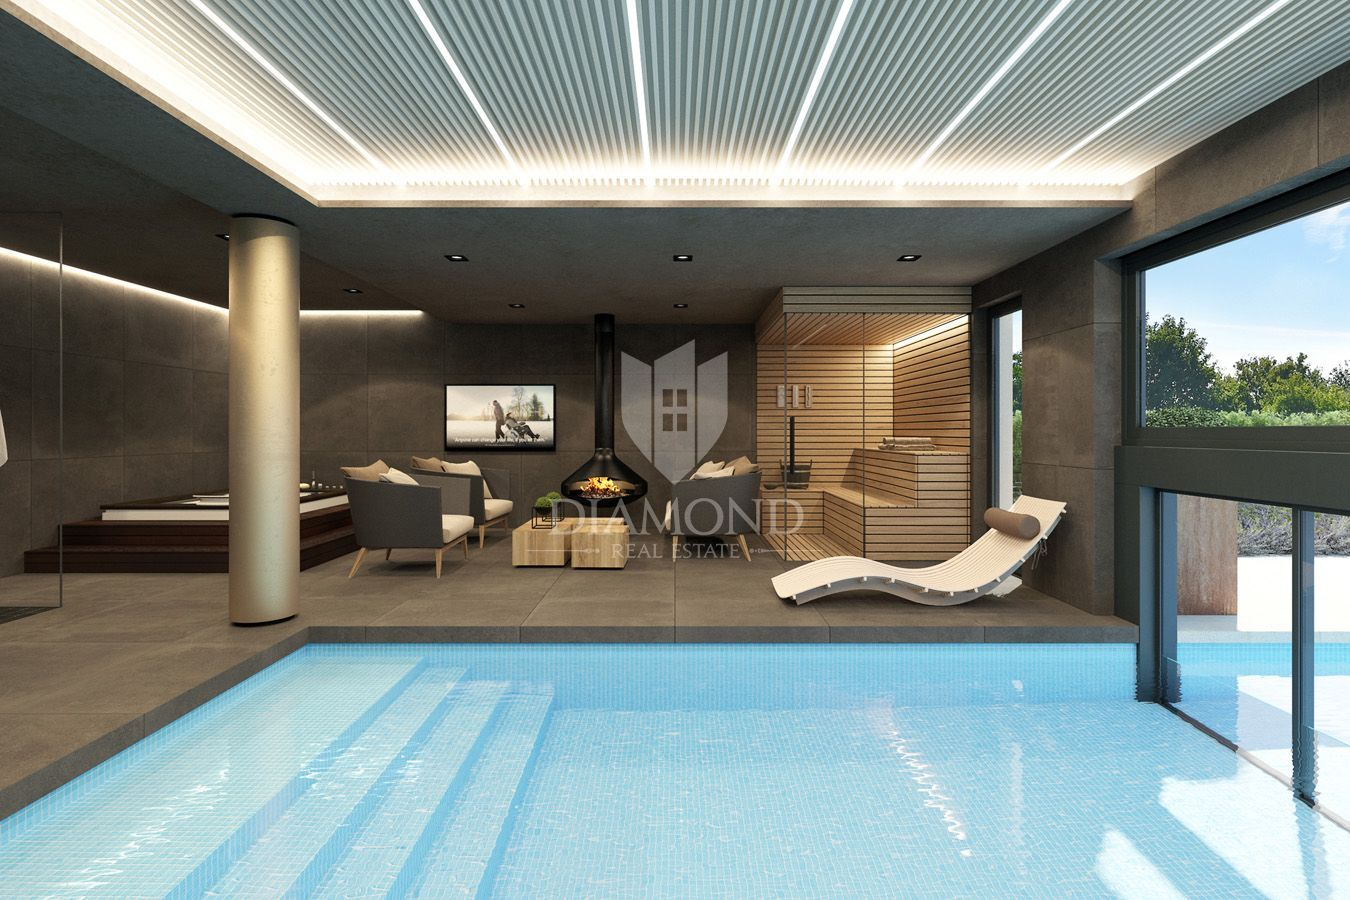 Poreč, Villa with indoor and outdoor swimming pool, House